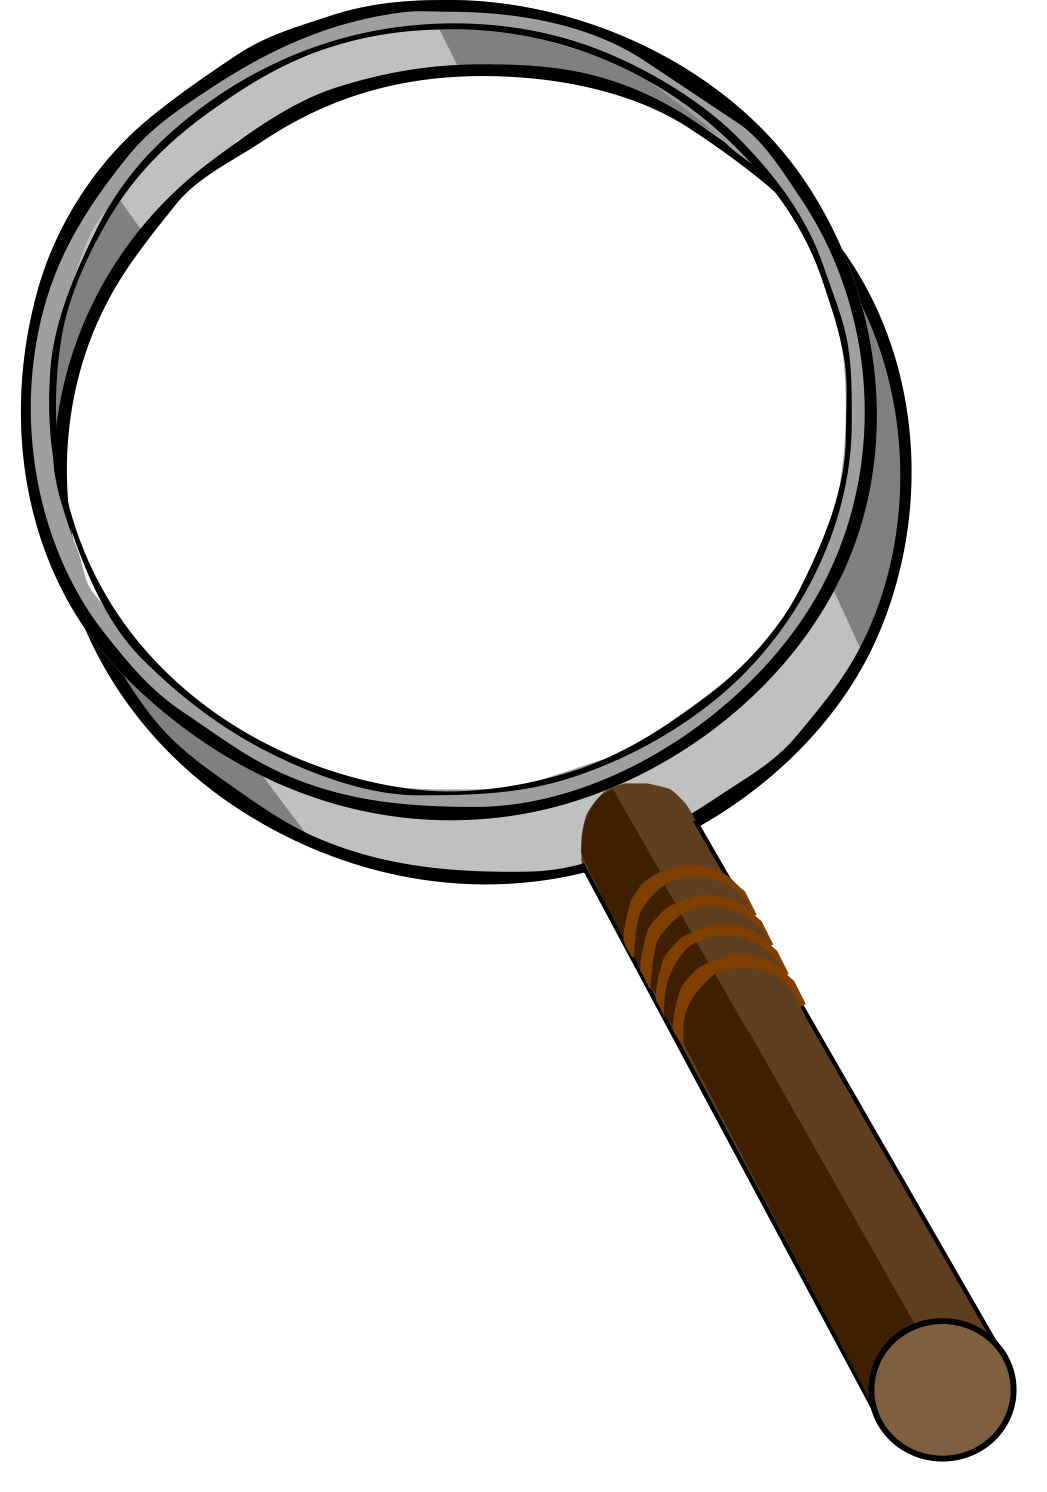 22 detective clipart magnifying glass . Free cliparts that you can ...